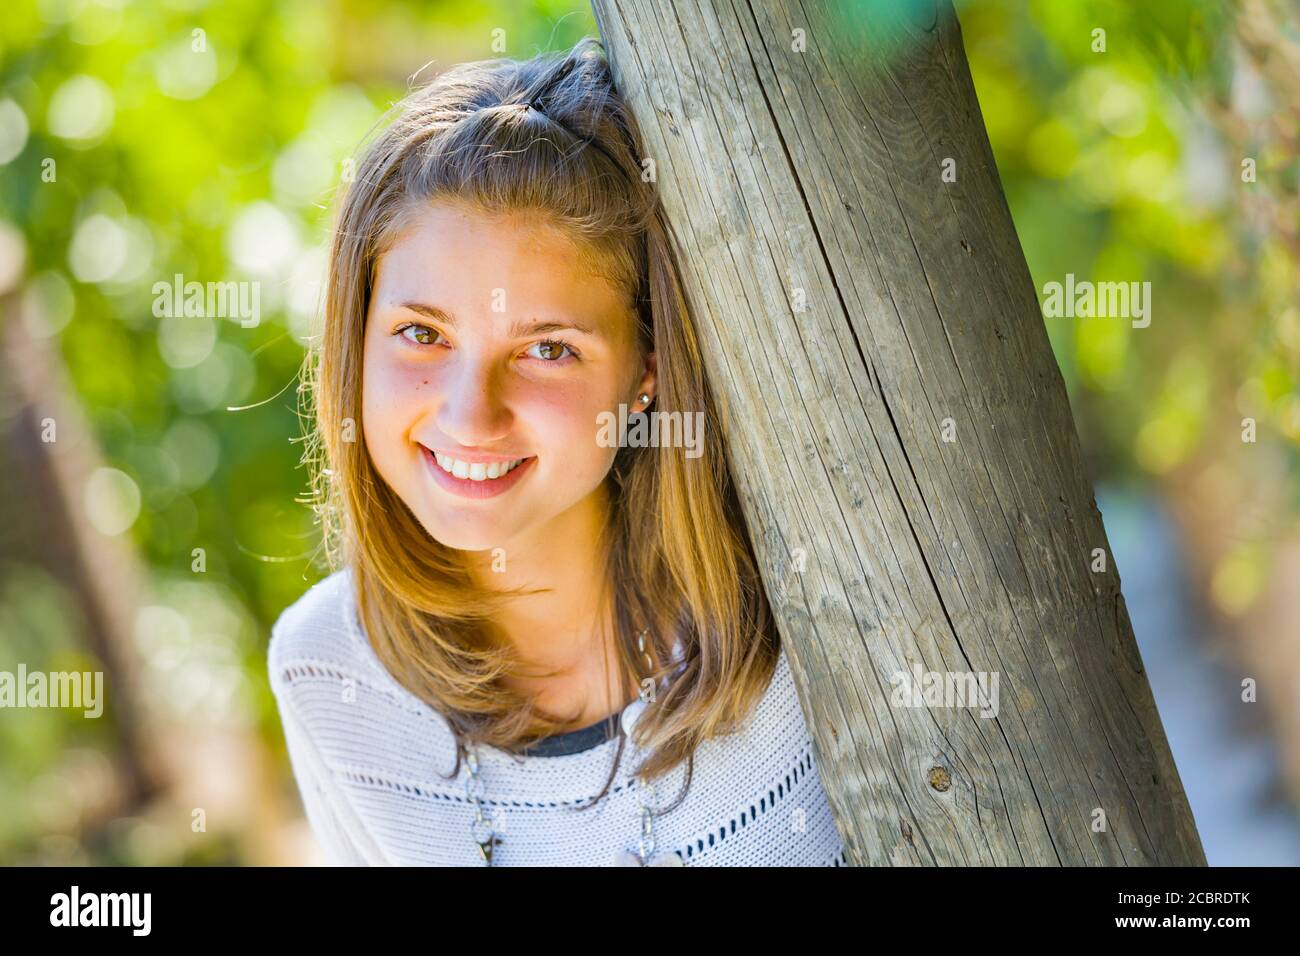 Teengirl portrait smiling at camera eyeshot charismatic gorgeous stunning photogenic lovely handsome appealing charismatic Stock Photo